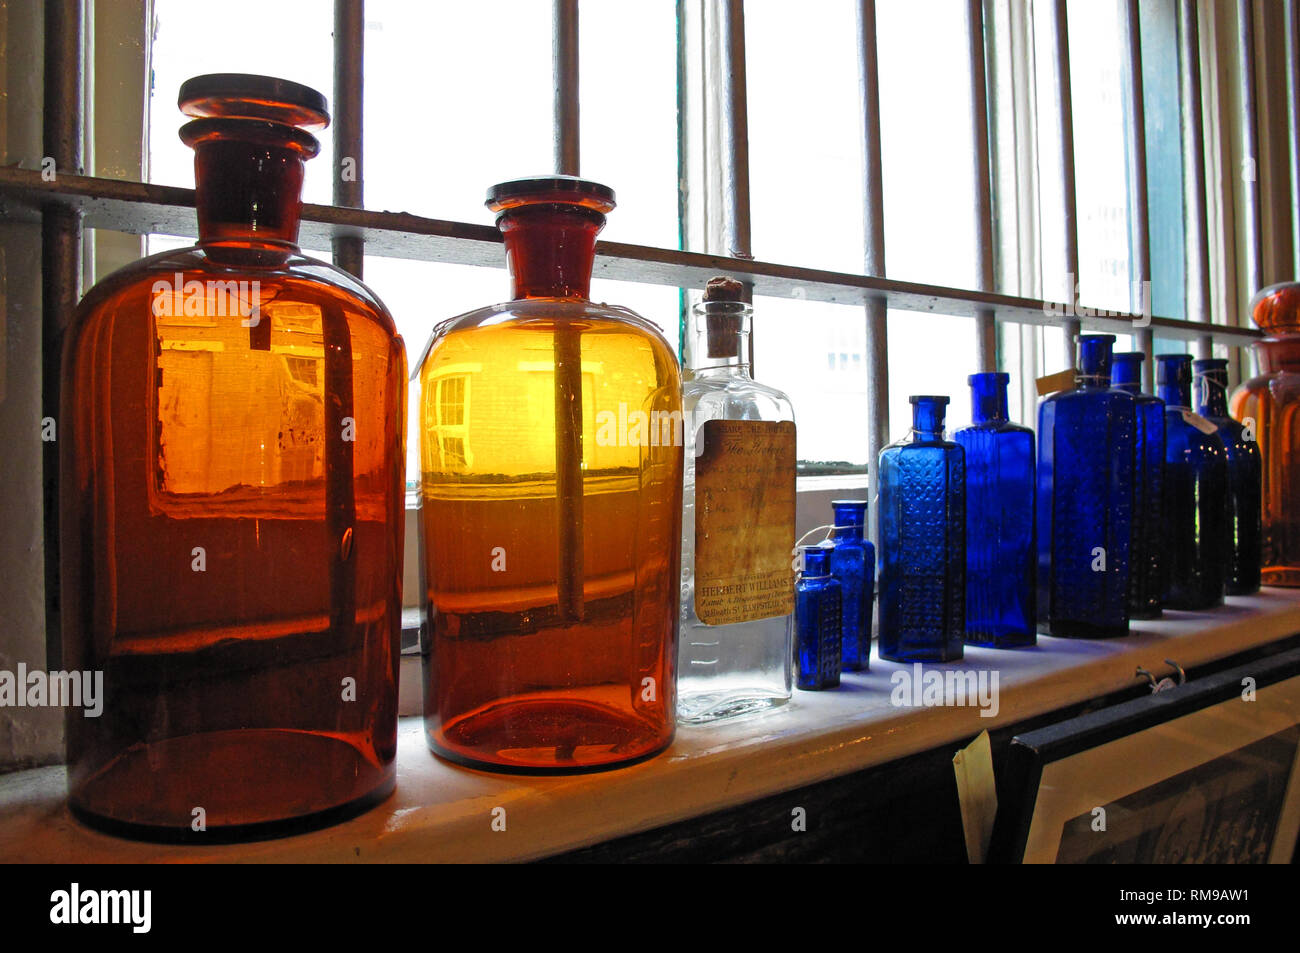 Coloured Victorian medicine bottles on a shelf, blue, orange, yellow glass - Stock Image